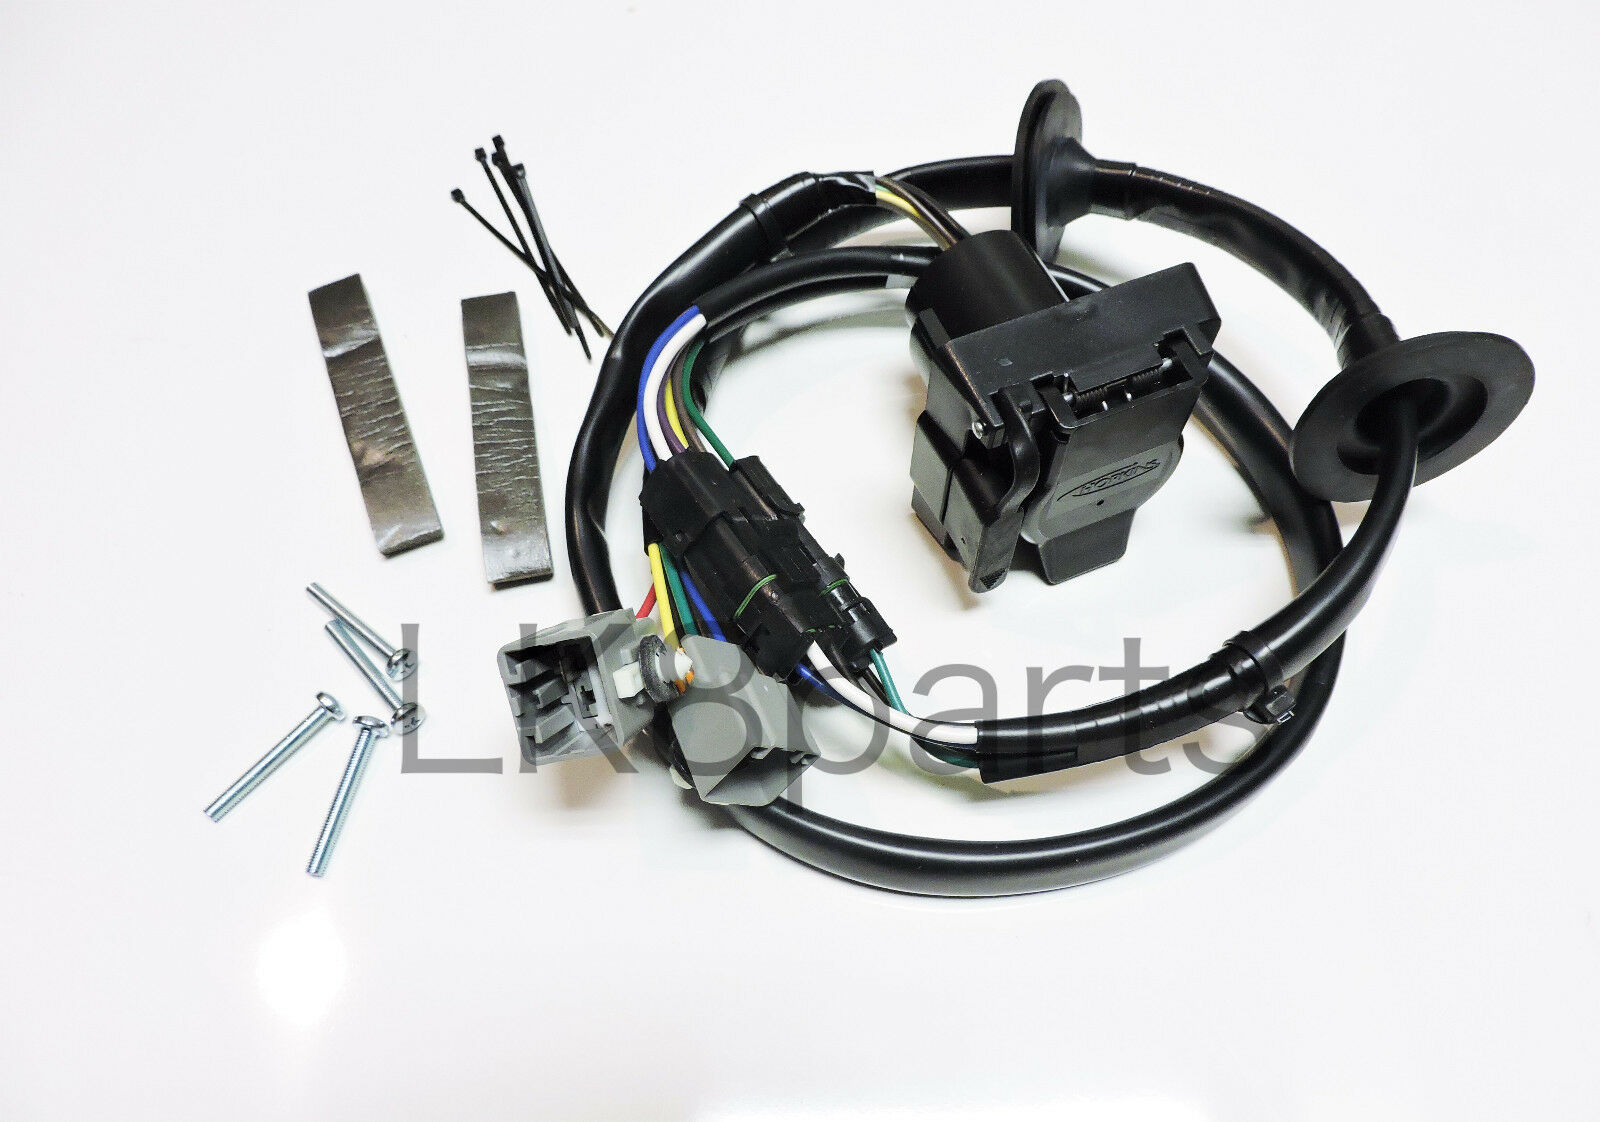 Land Rover Lr4 Tow Hitch Trailer Wiring Wire Harness Kit Lr4 10